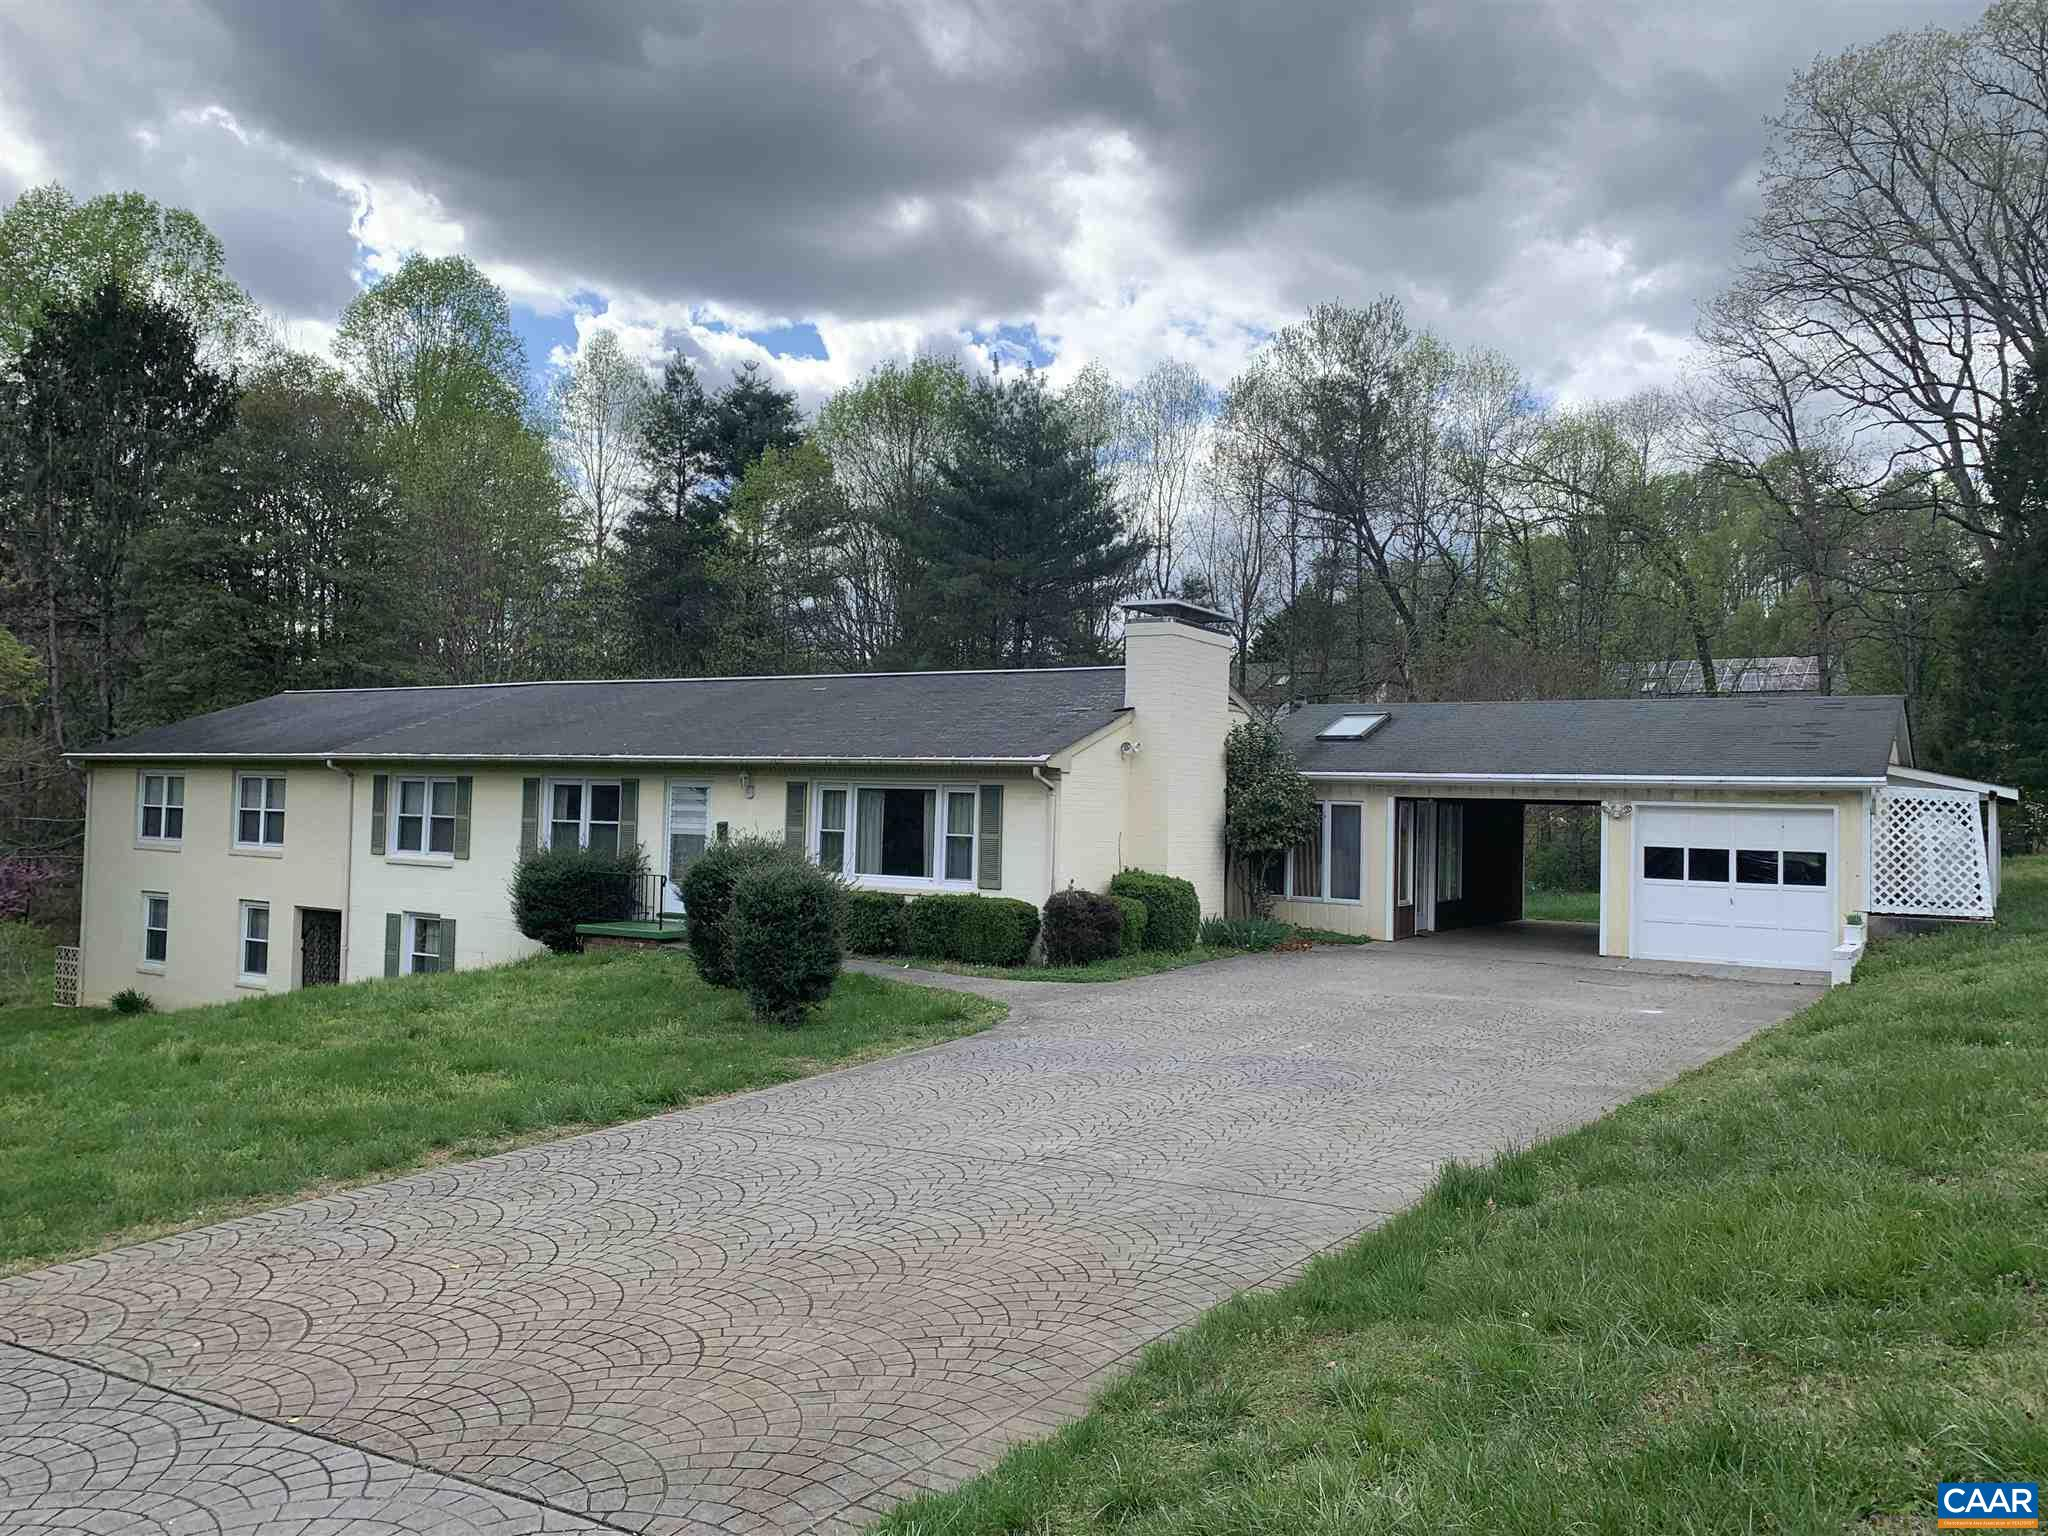 """Rare find in today's market a large home on almost an acre w/ prime location off Rio Road.  Basement had been used as an apartment.  Upgrades include detached garage & elevator.  Being sold """"as is"""" """"where is""""  to settle estate."""